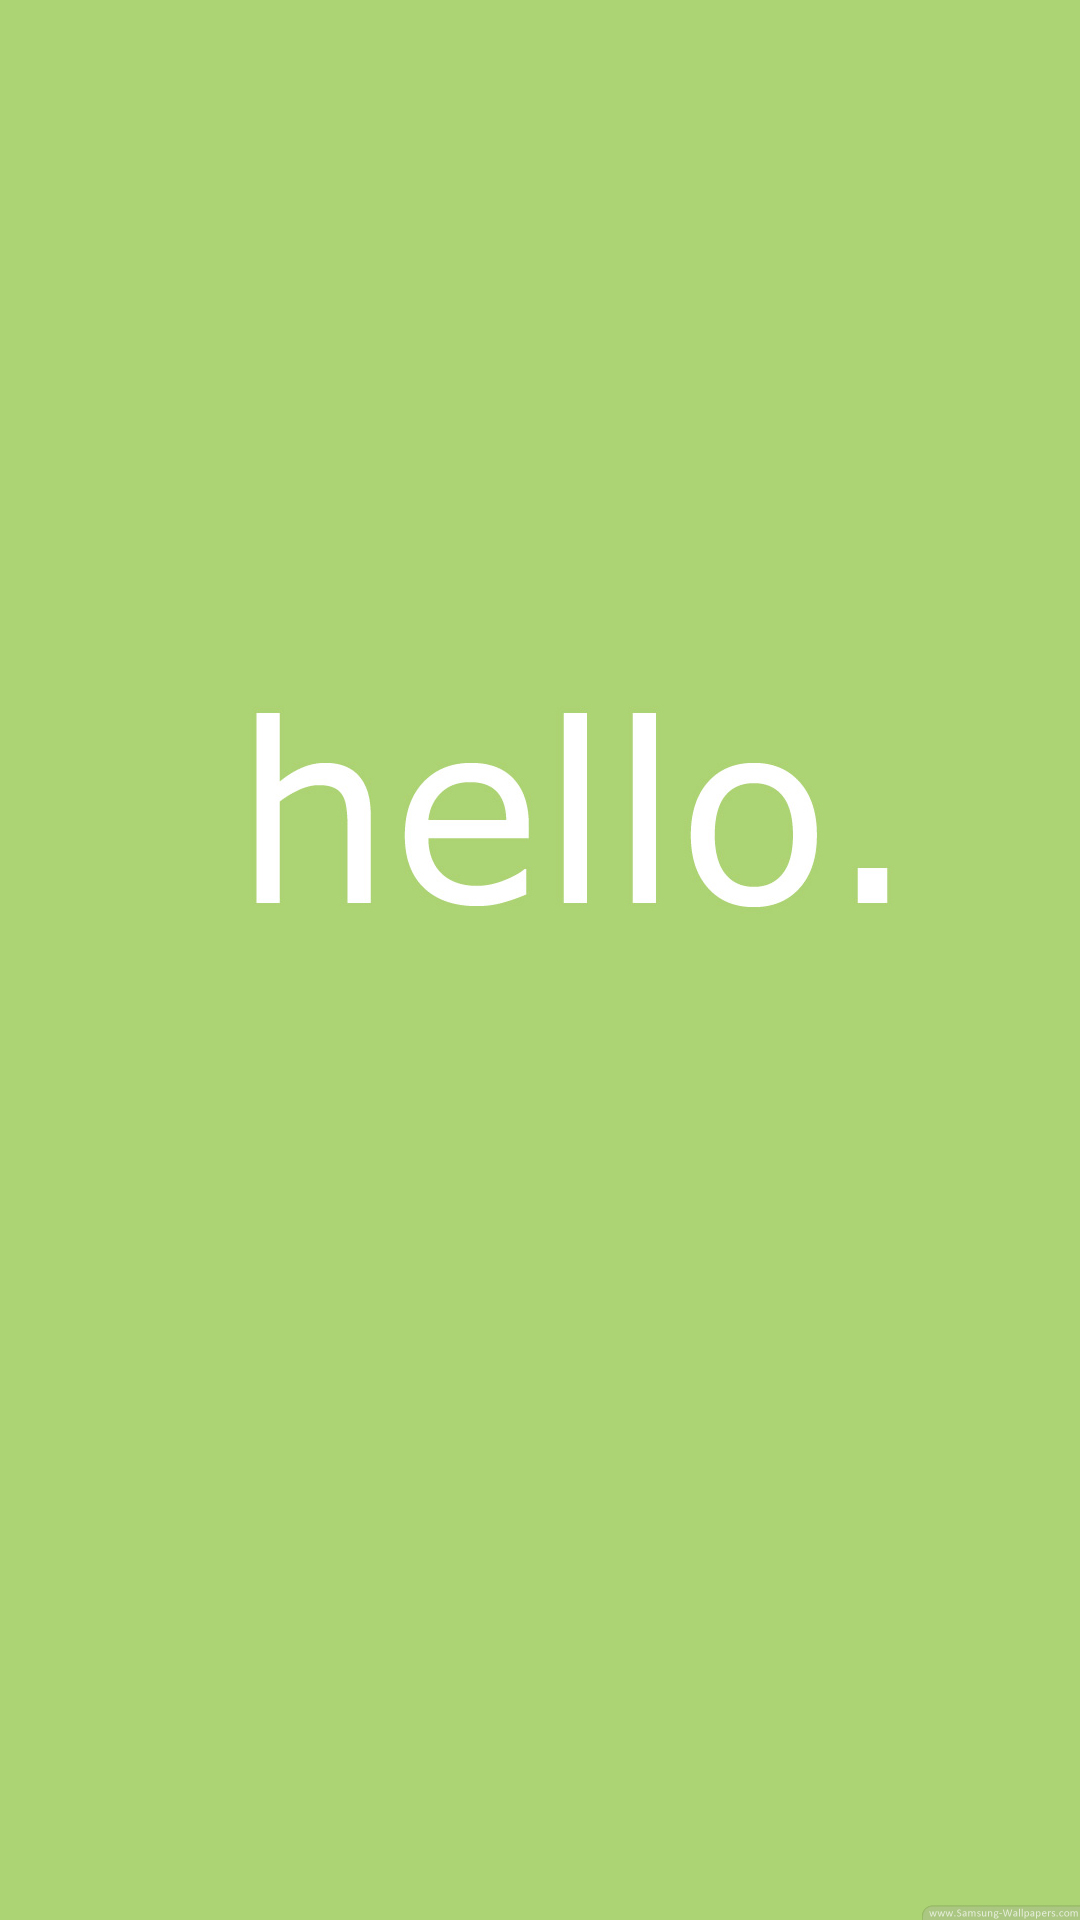 Android Hello Smartphone Wallpapers Hd